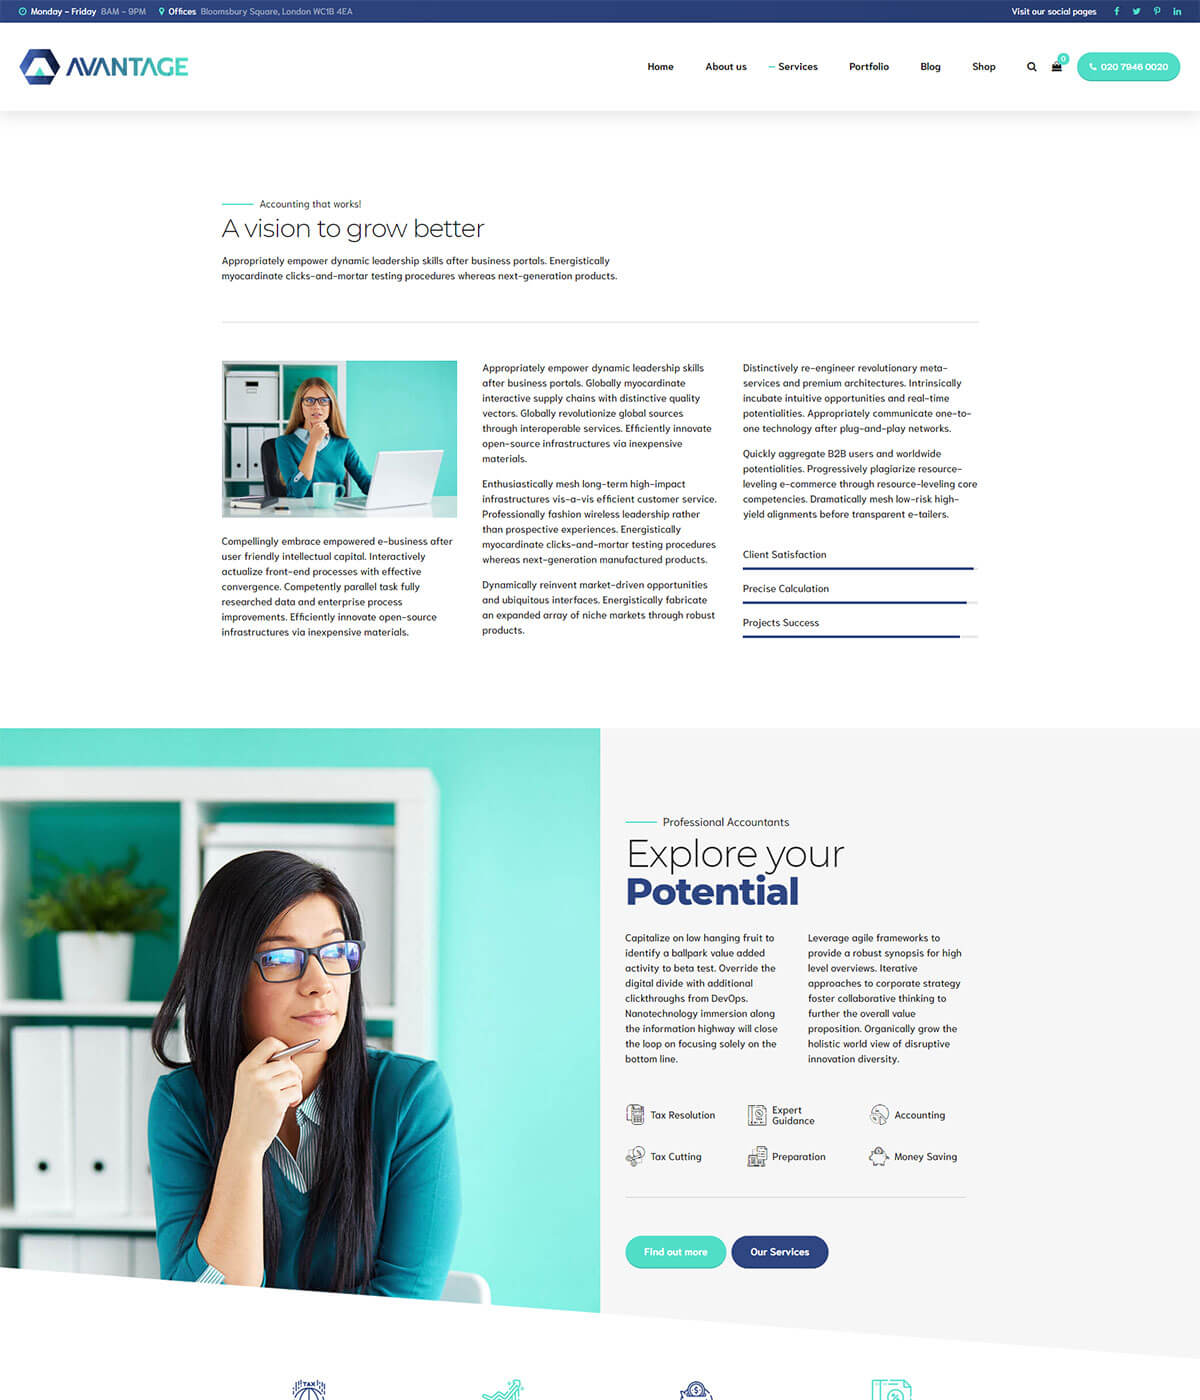 https://avantage.bold-themes.com/wp-content/uploads/2019/05/accountant-08-process.jpg